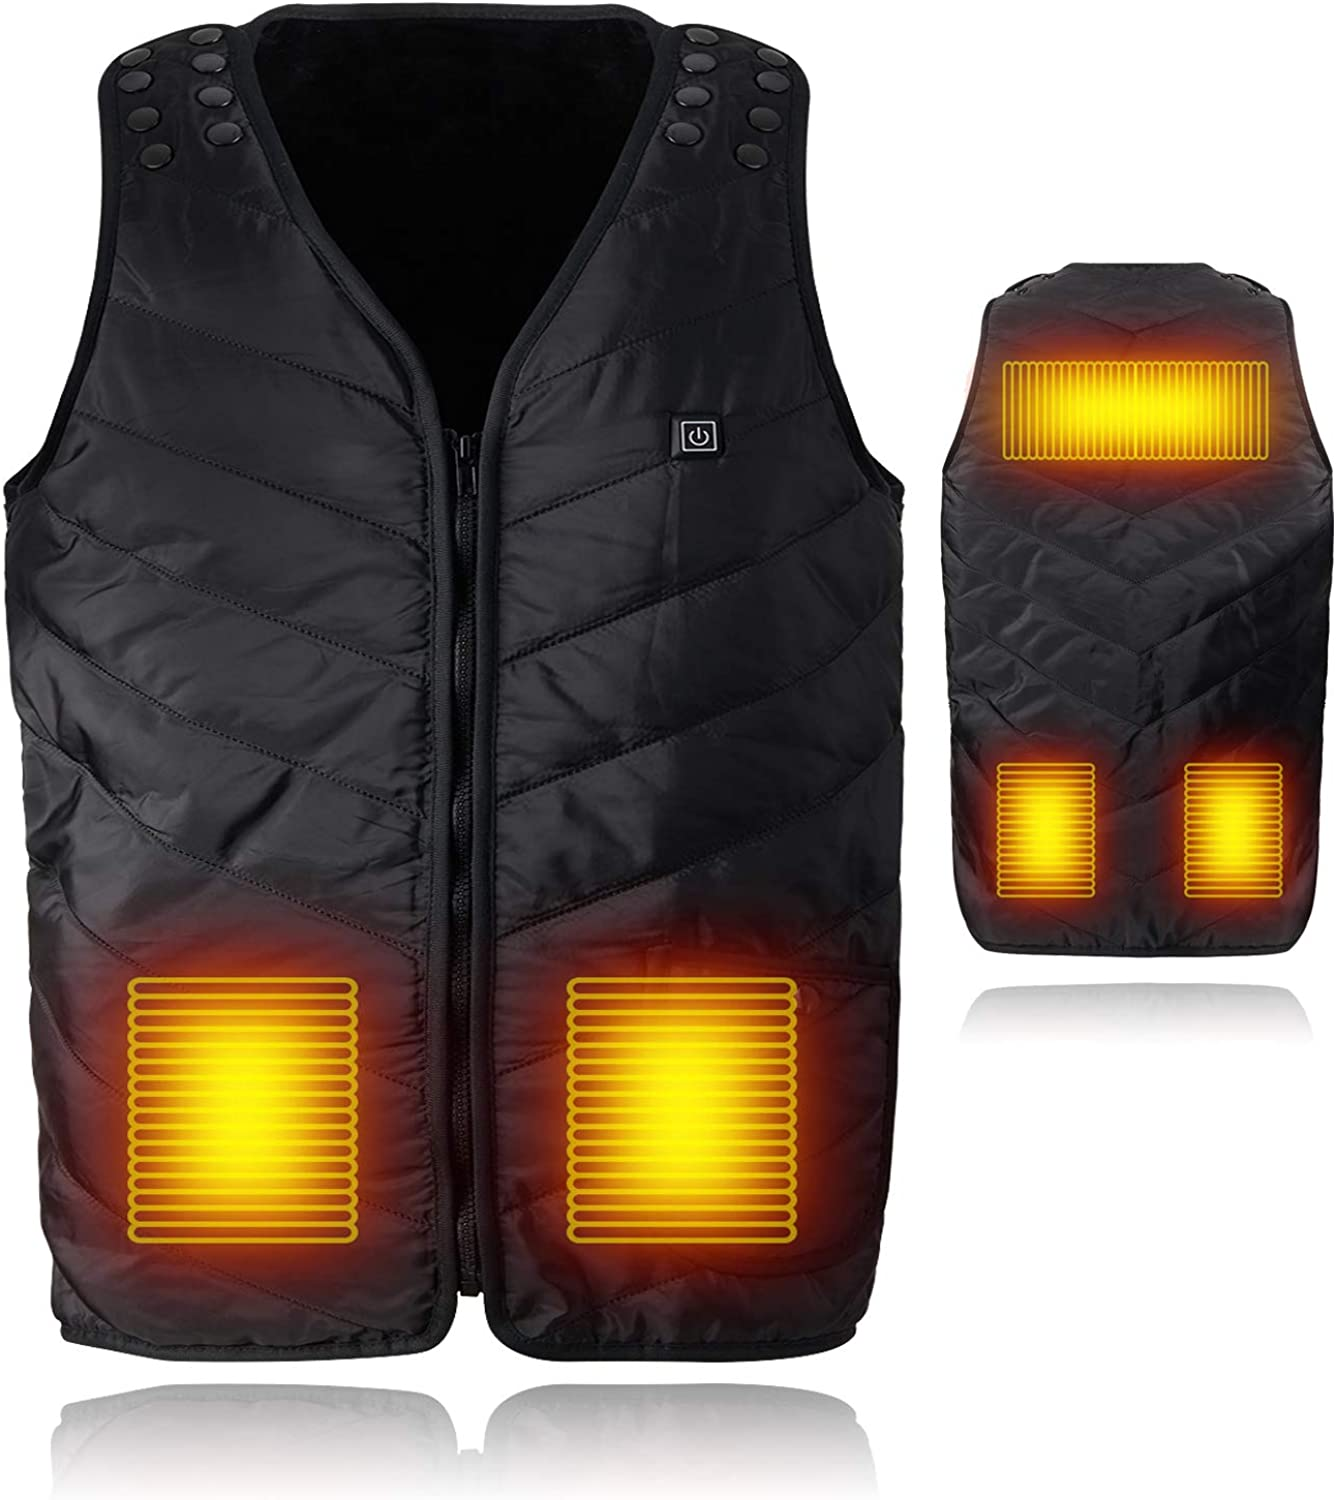 Lightweight Heated Vest with Adjustable Size,Elejolie USB Rechargeable Heated Jacket,Washable Electric Vest for Men Women